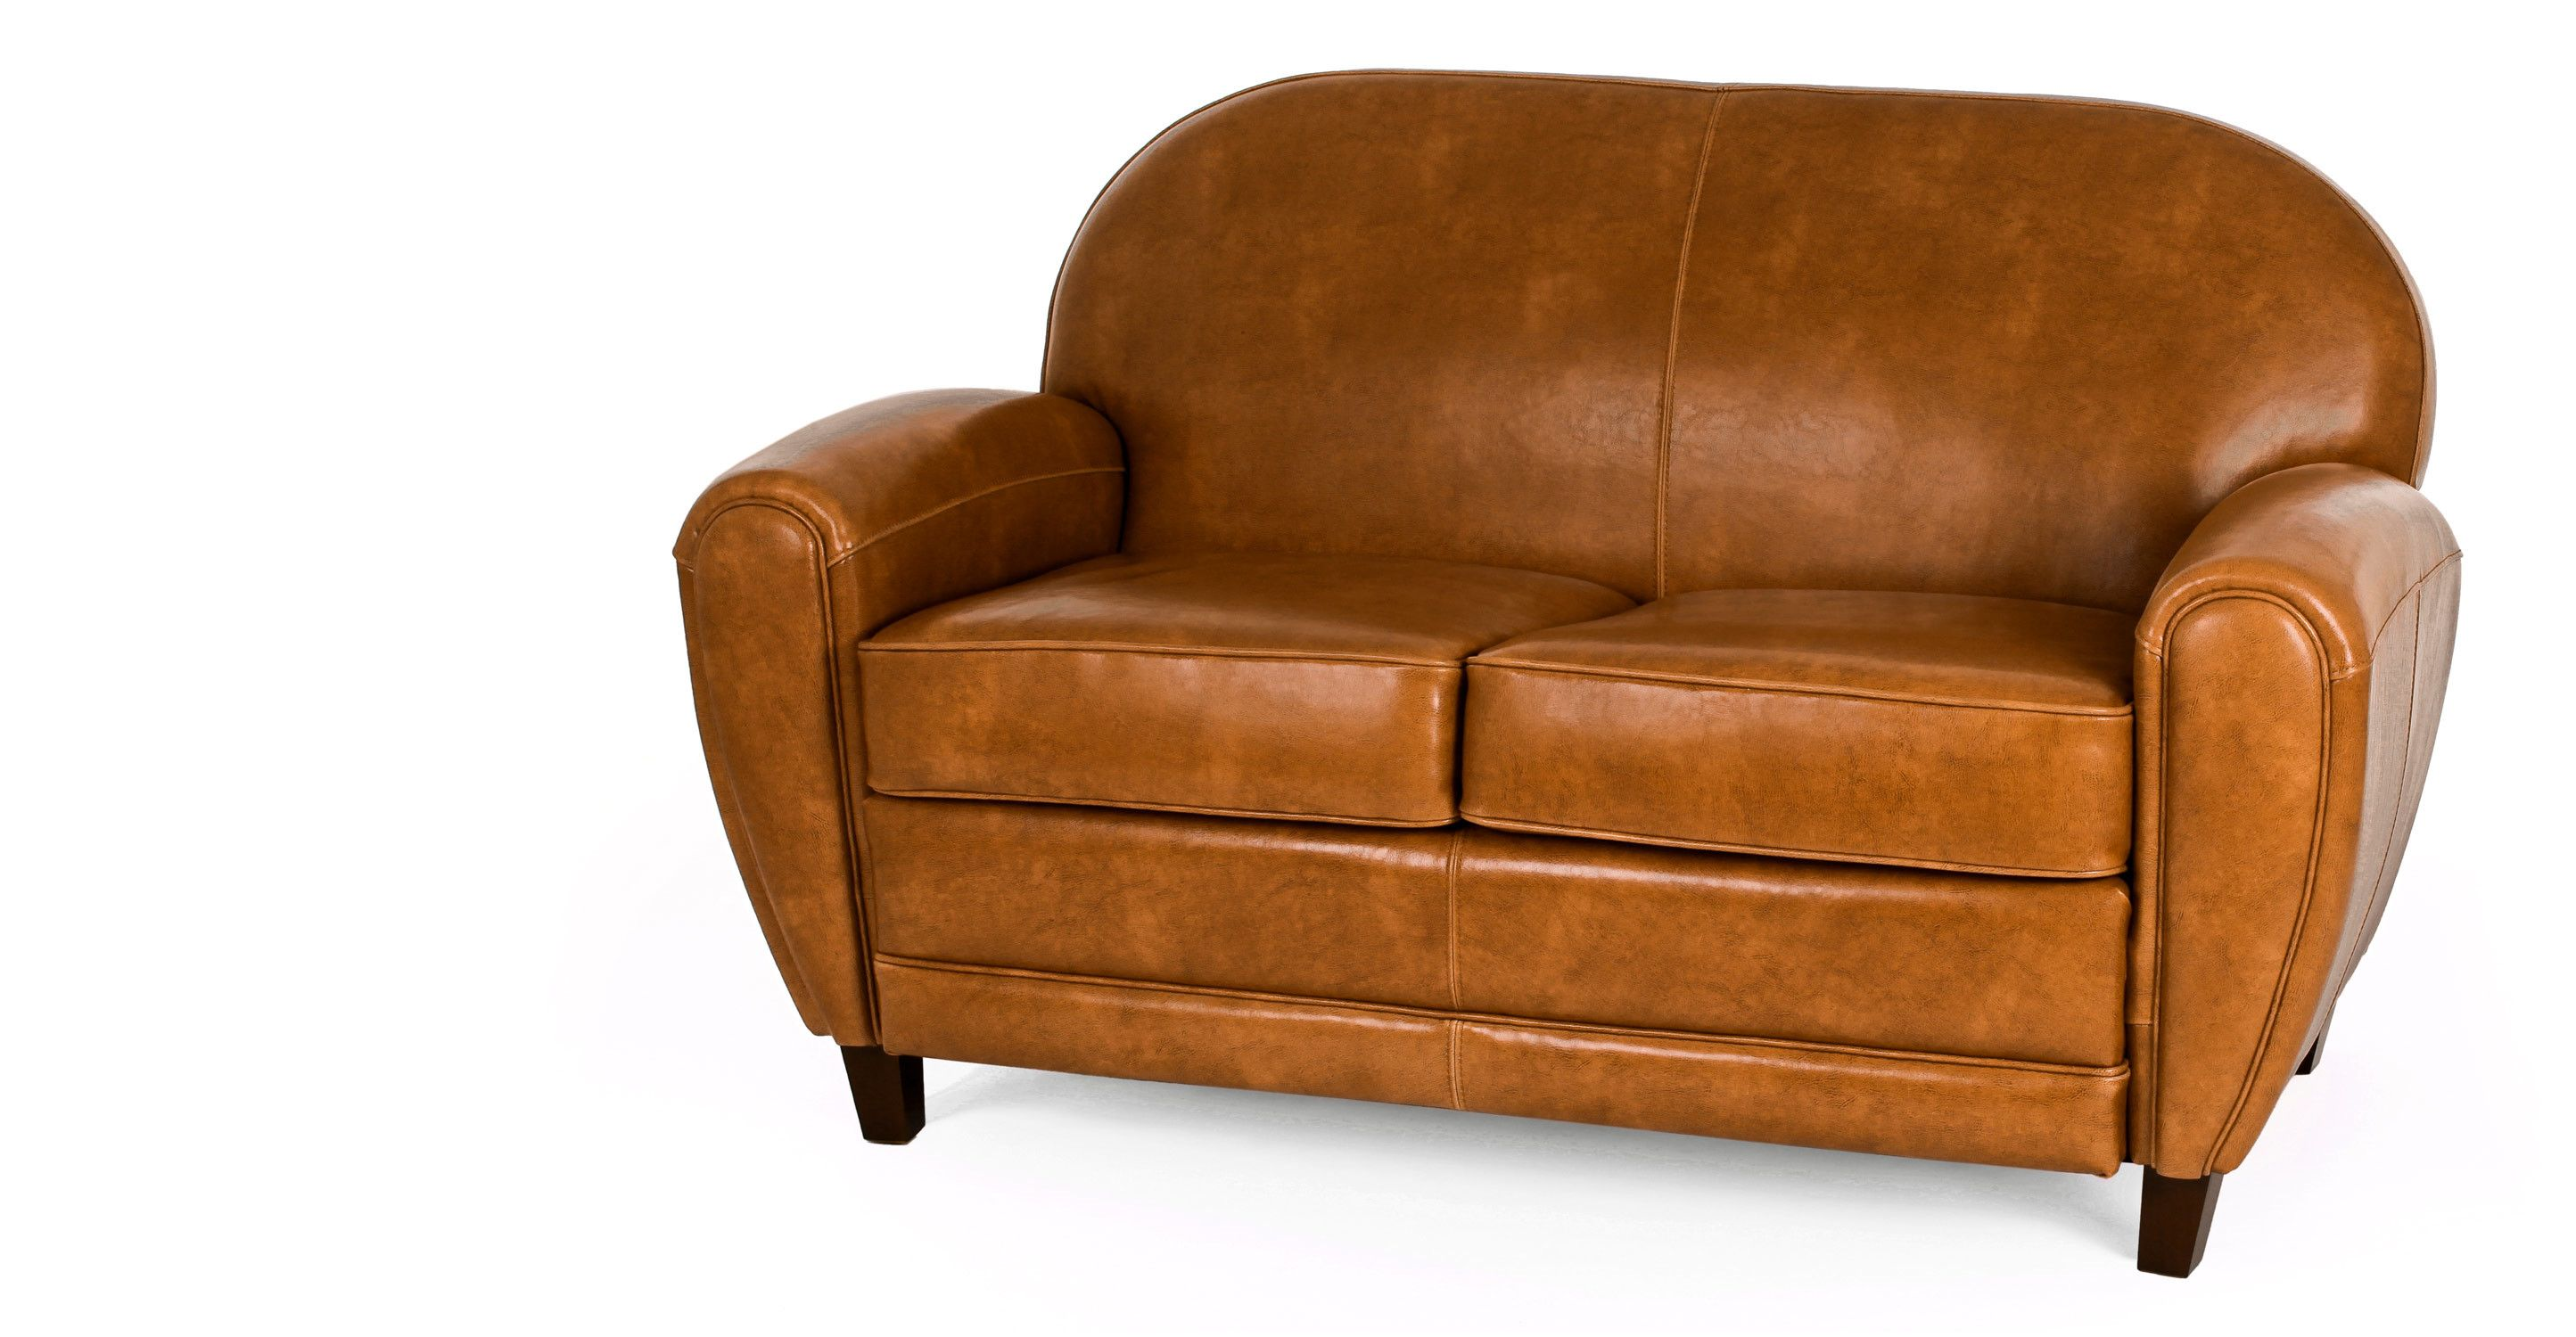 Excellent Jazz Club 2 Seater Sofa Cognac From Made Com Brown Onthecornerstone Fun Painted Chair Ideas Images Onthecornerstoneorg